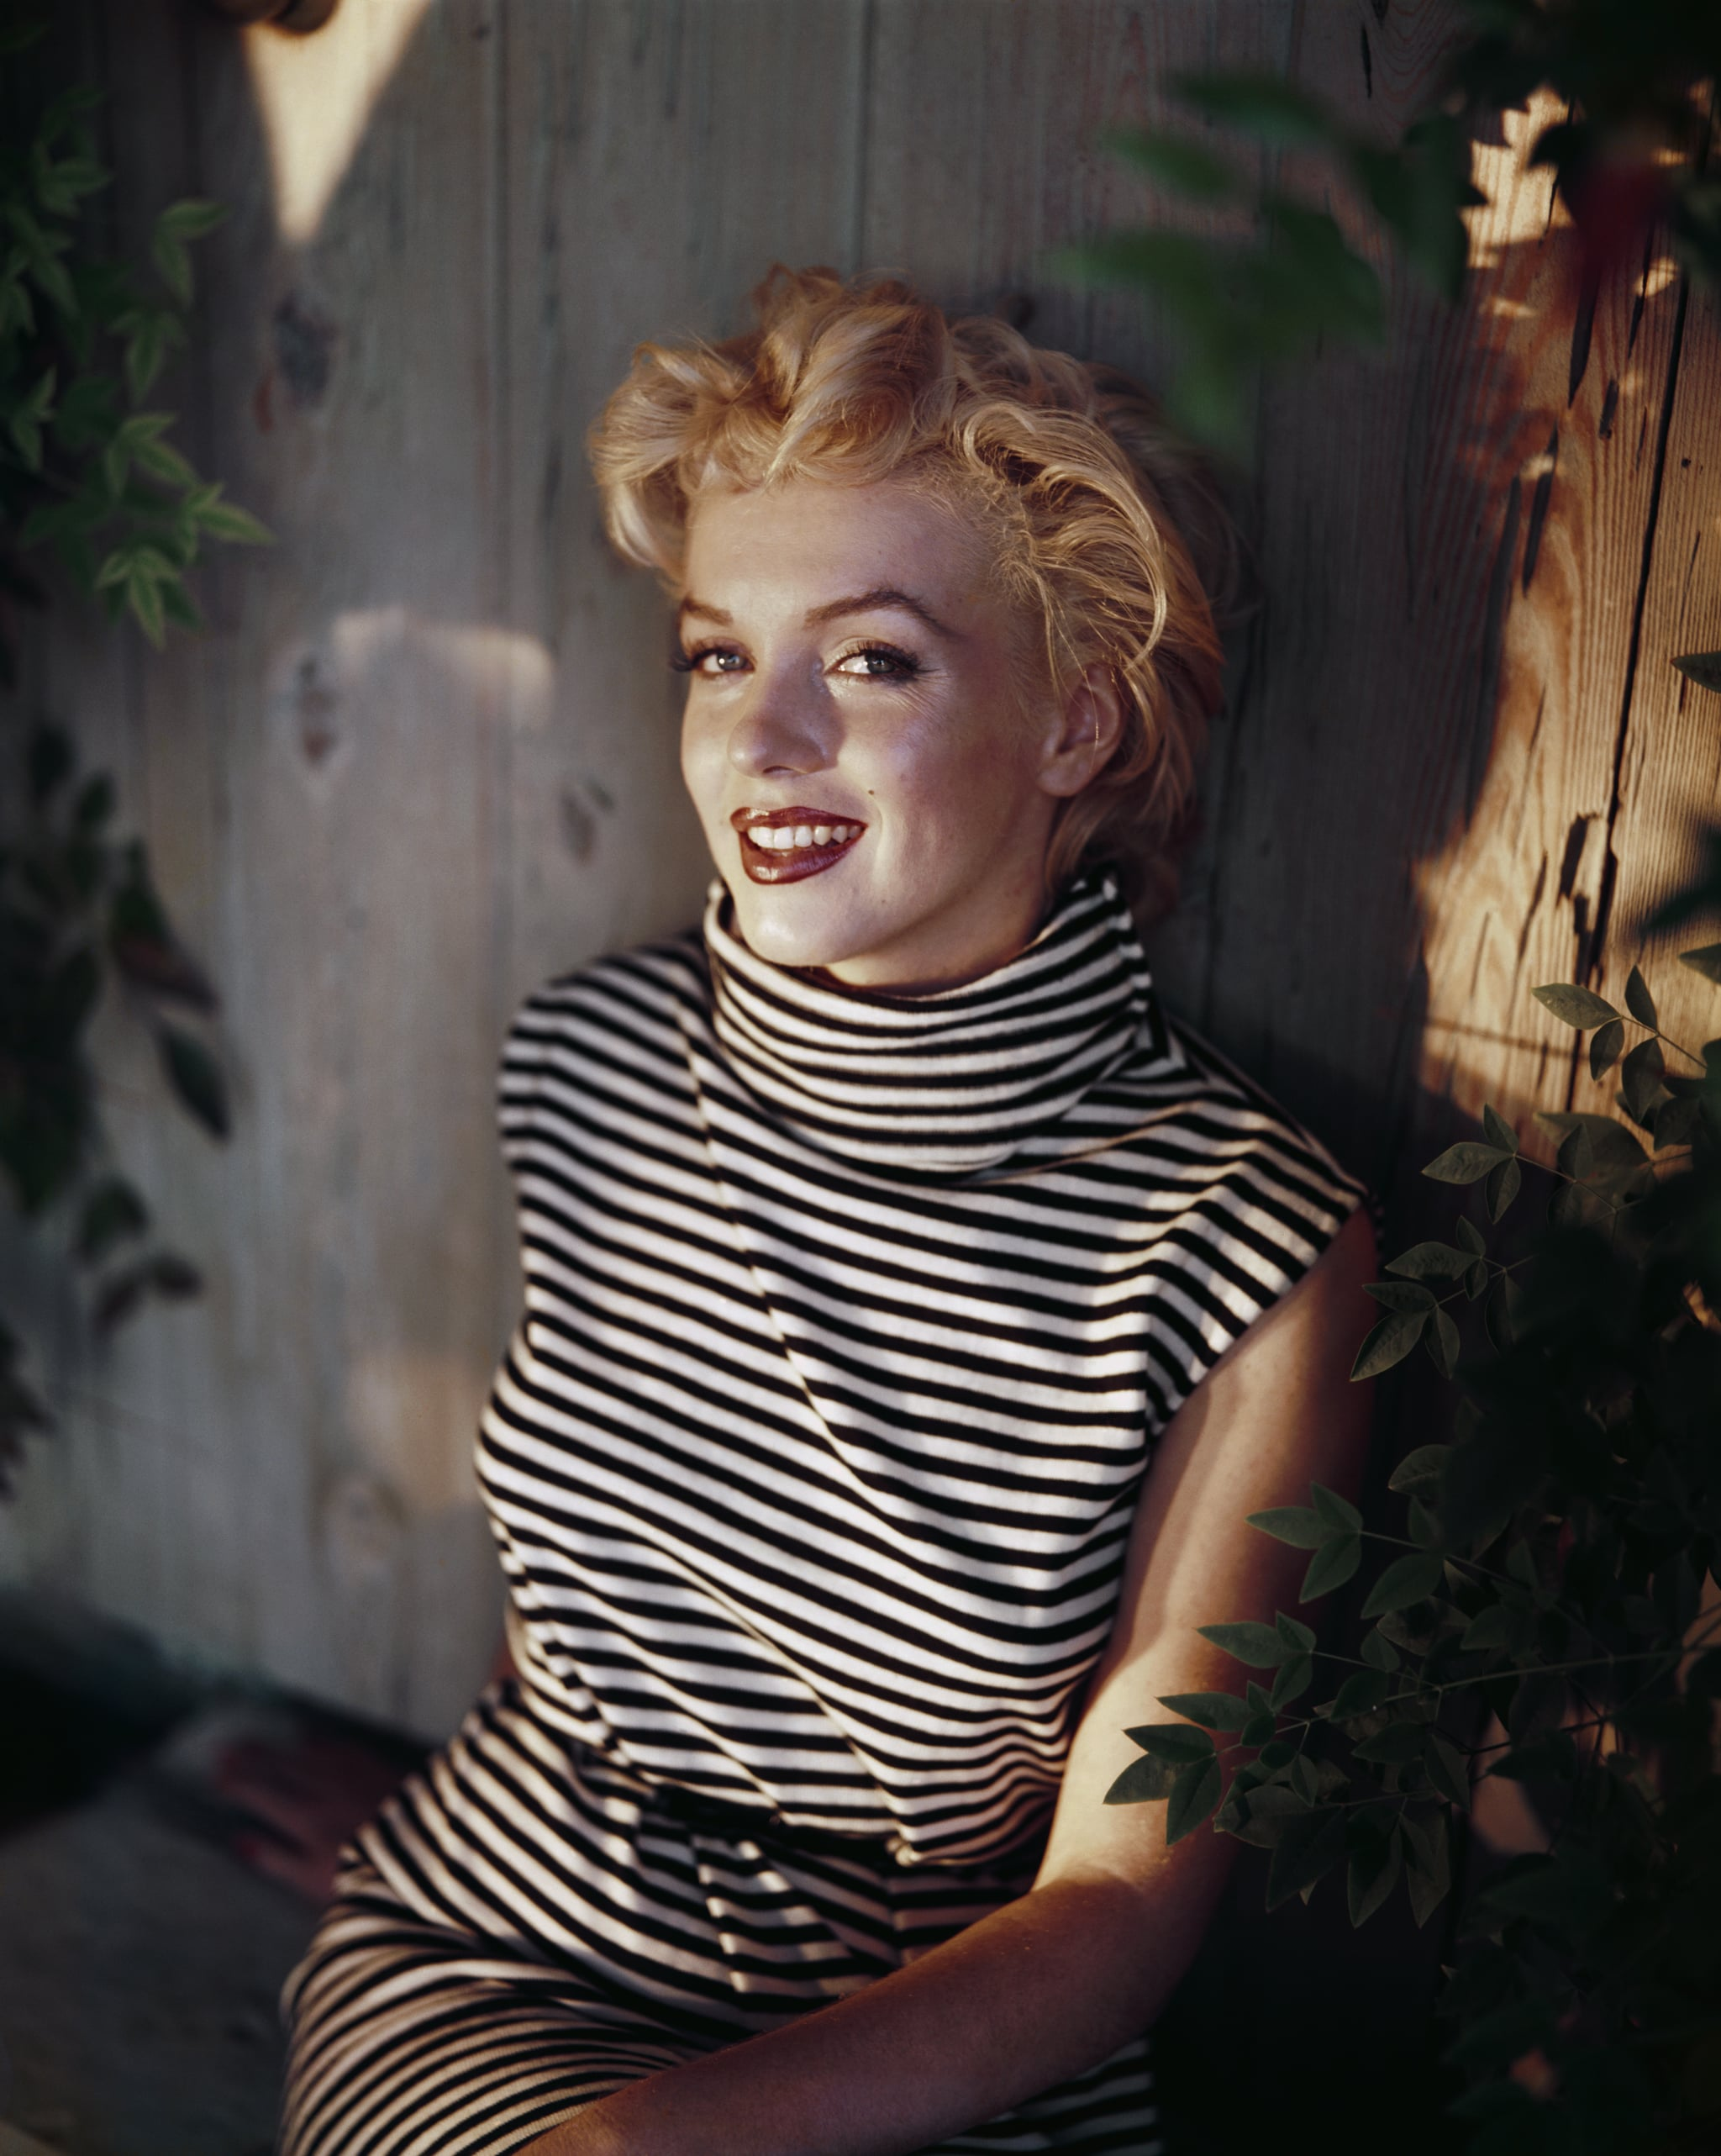 Marilyn Monroe's Tragic Life and Death Is the Subject of an Upcoming BBC Studios Series